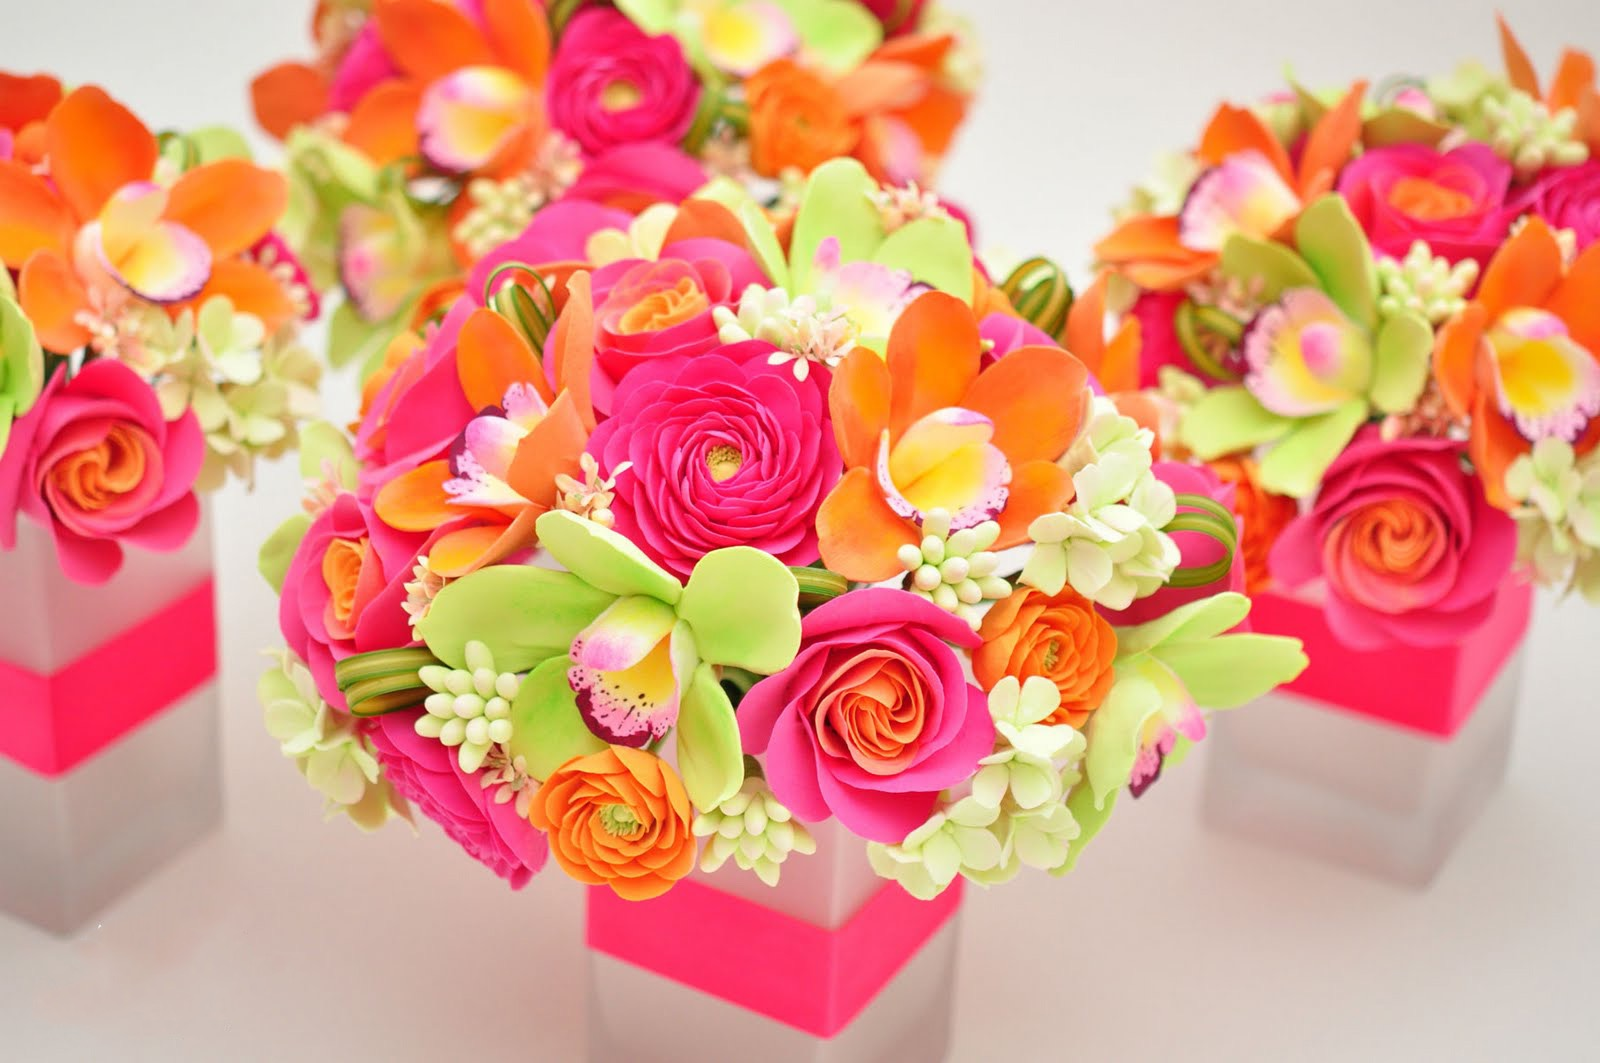 Romantic Pink, Orange And Green Flowers Wedding Centerpieces (Image 14 of 15)